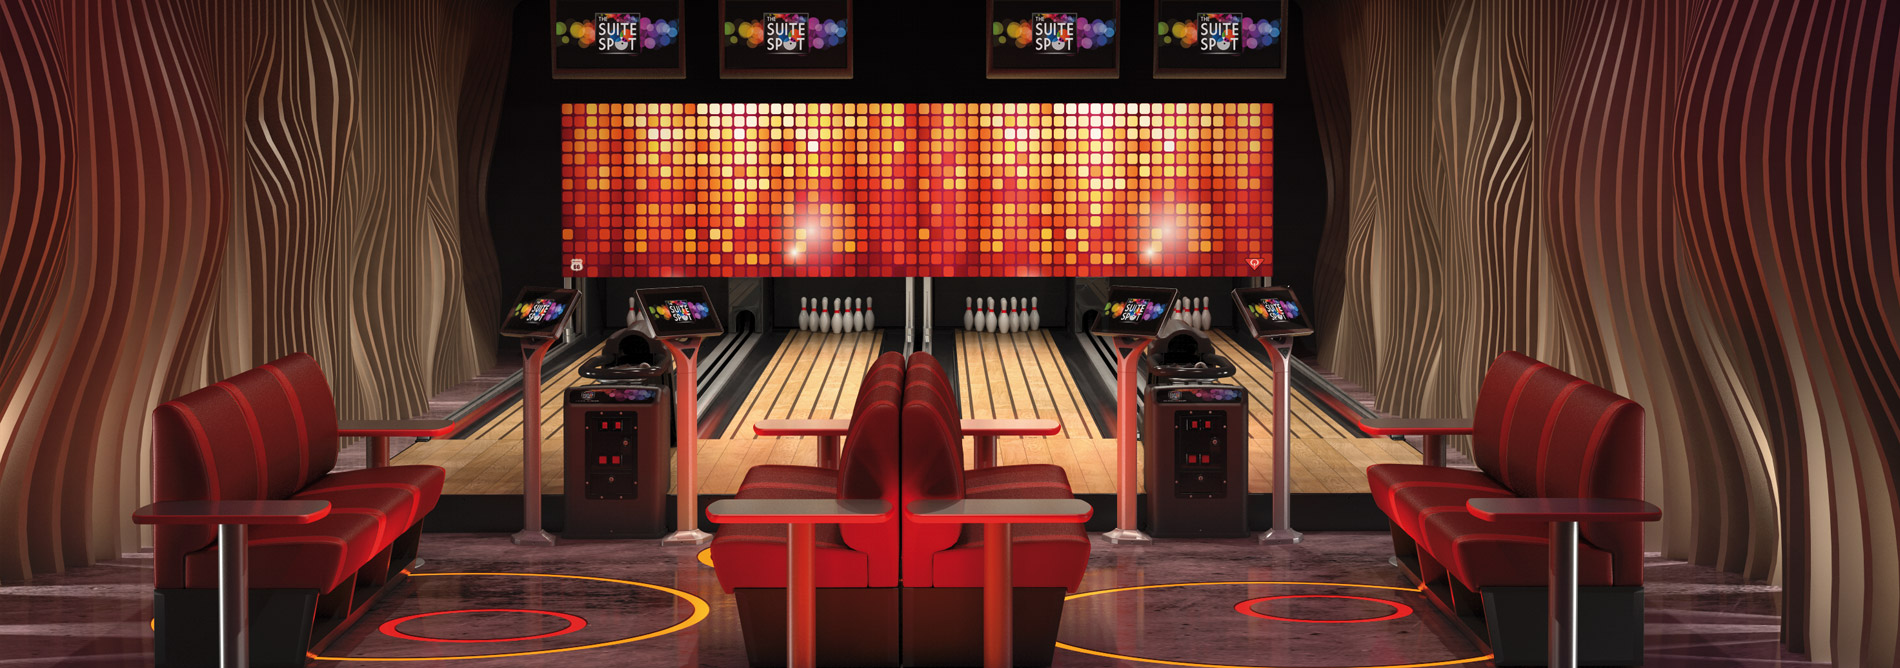 Bowling-QubicaAMF-mini-bowling-the-suite-spot-banner2.jpg